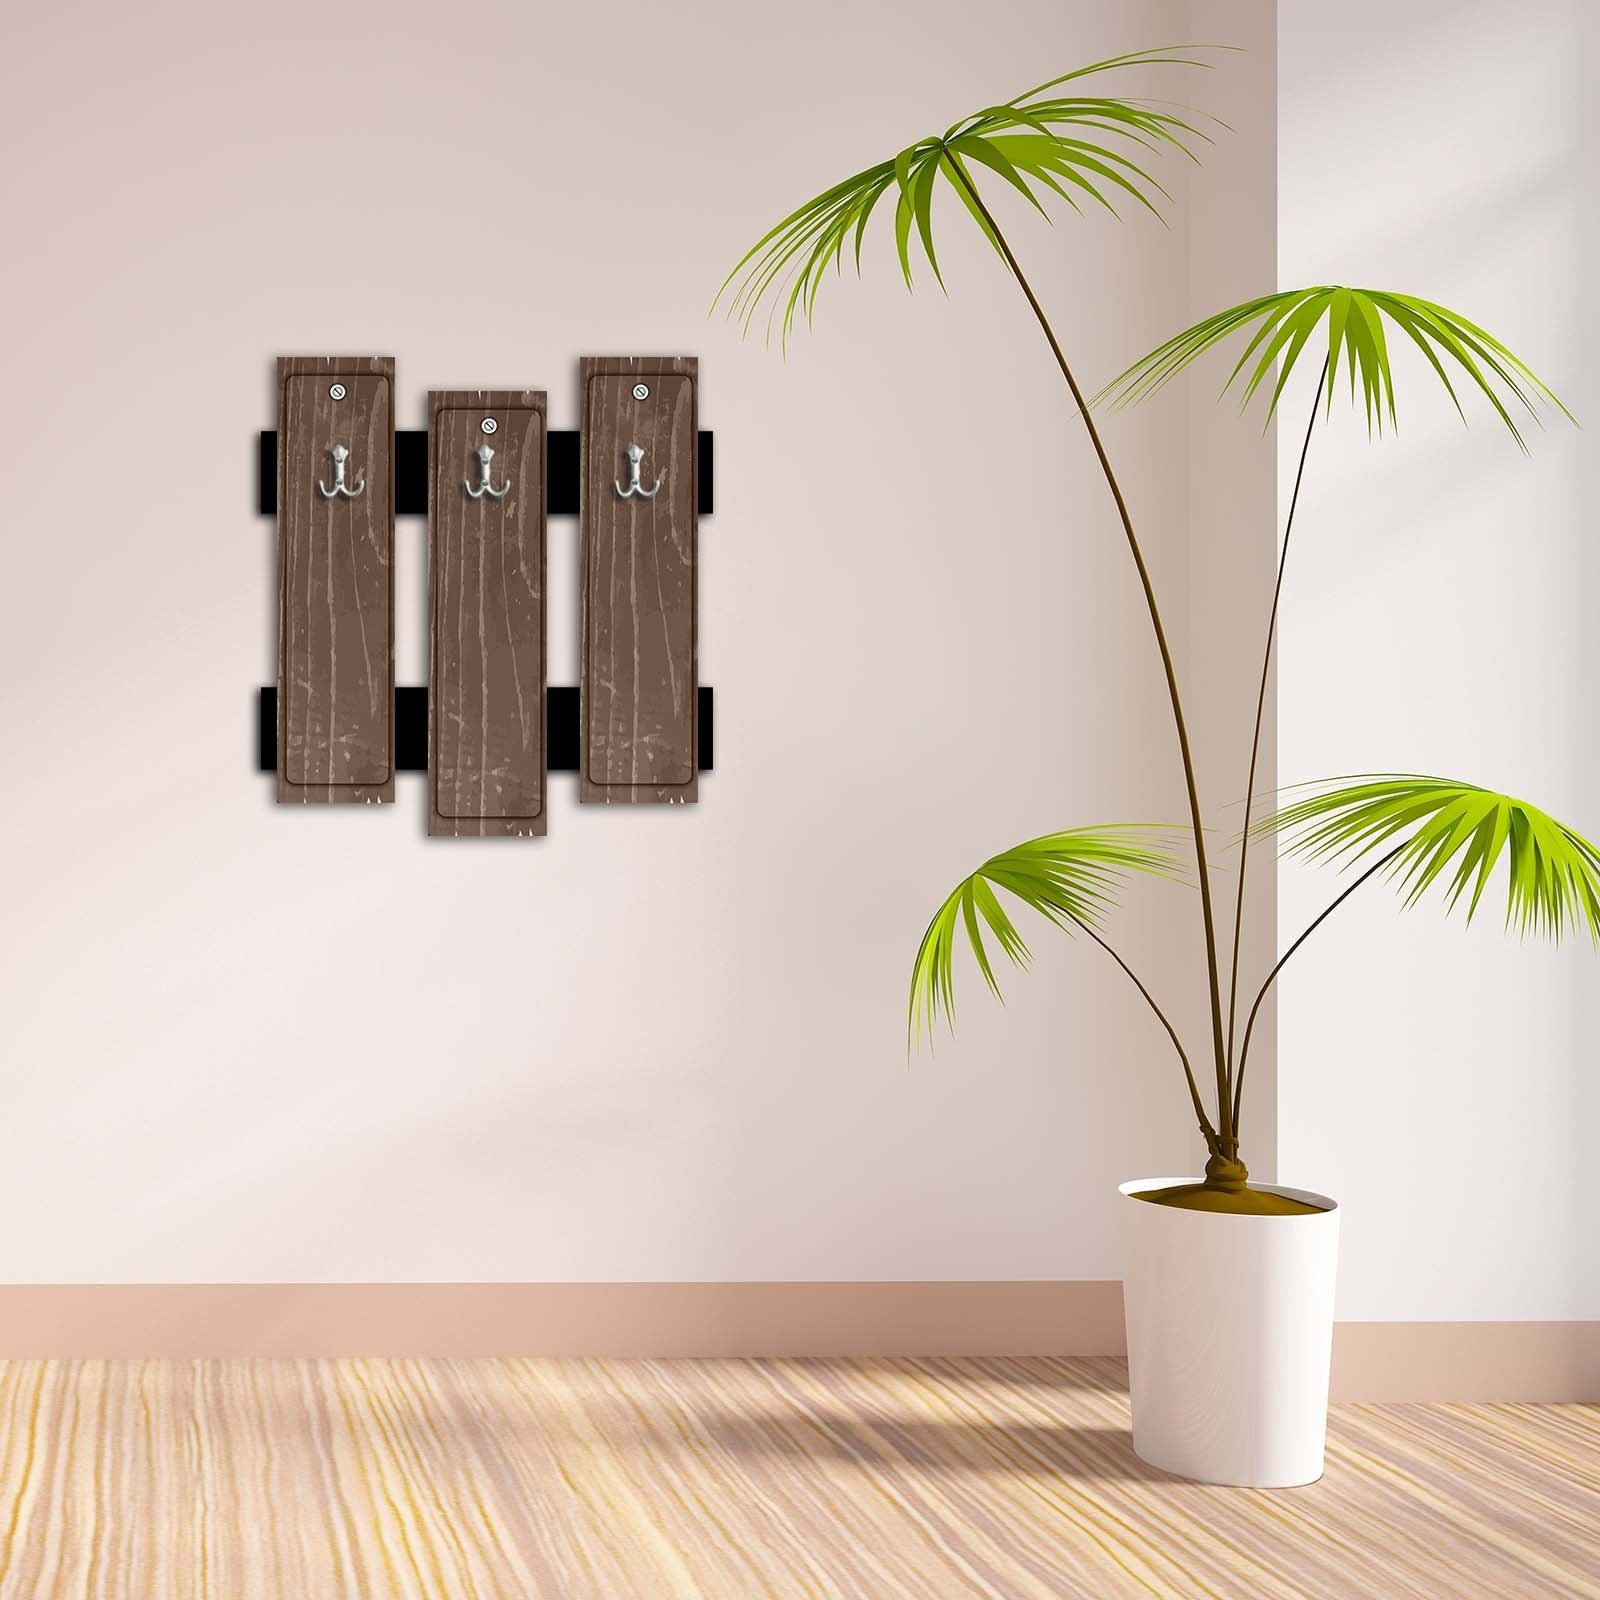 Decorative Wall Hook 3 Pcs Metal Key Holder 100% MDF Mounted Hanging Home Decor, Perfect for Foyers Entryway, Door Coats Hats Towels Scarfs Bags Mottled Stained Brown Backgorund Striped Pattern Design